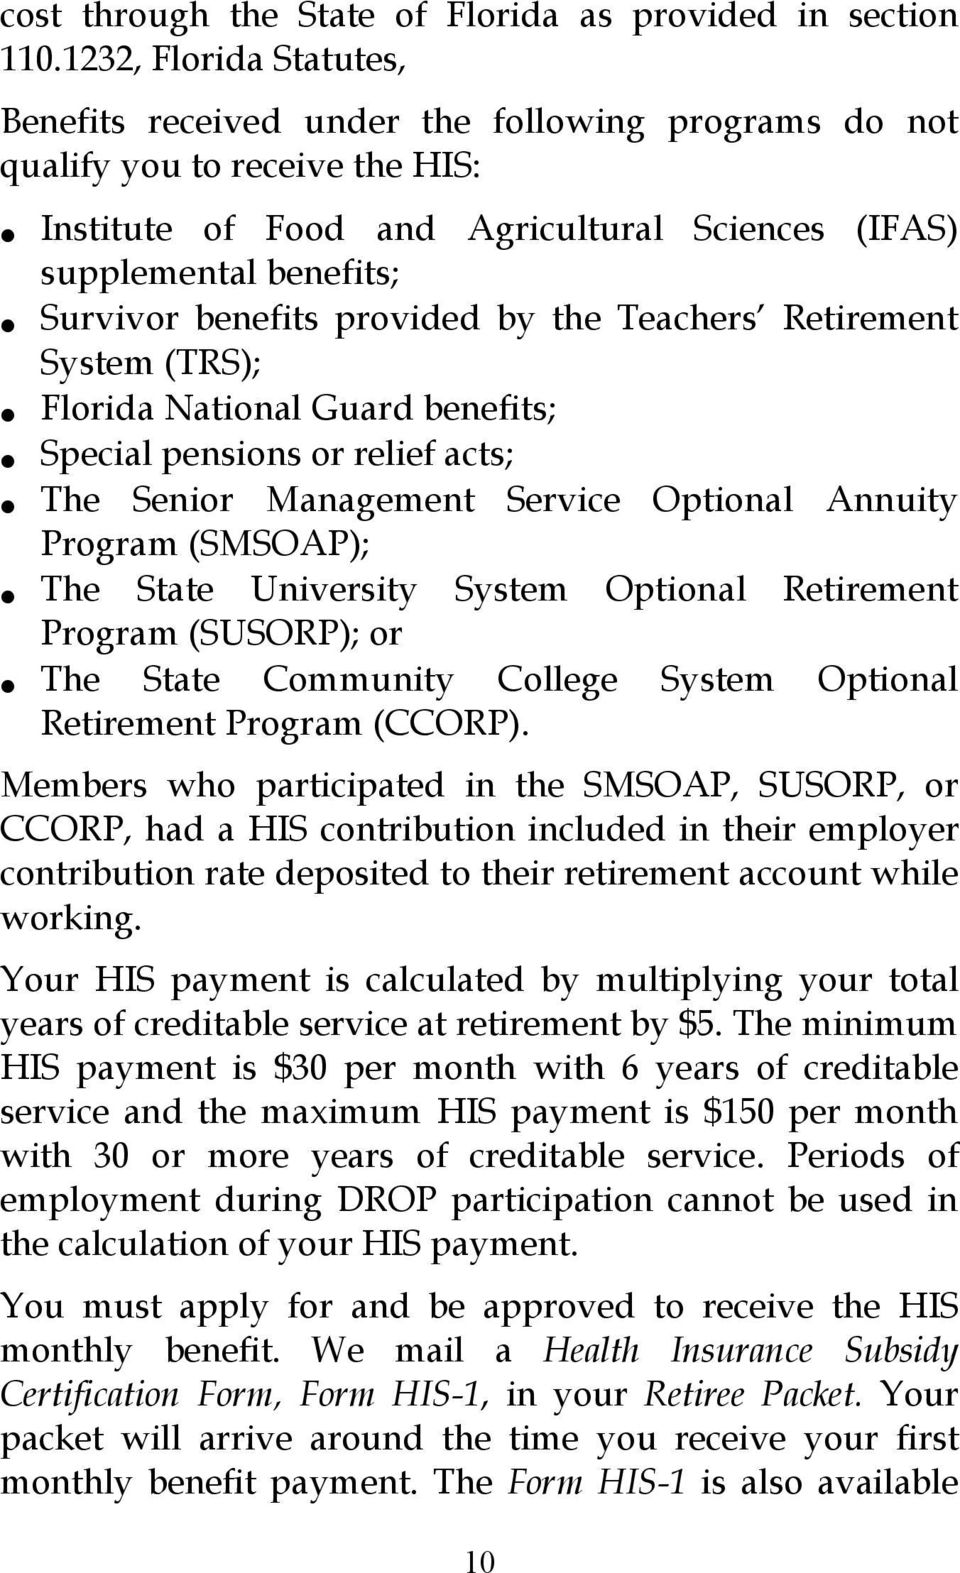 benefits provided by the Teachers Retirement System (TRS); Florida National Guard benefits; Special pensions or relief acts; The Senior Management Service Optional Annuity Program (SMSOAP); The State